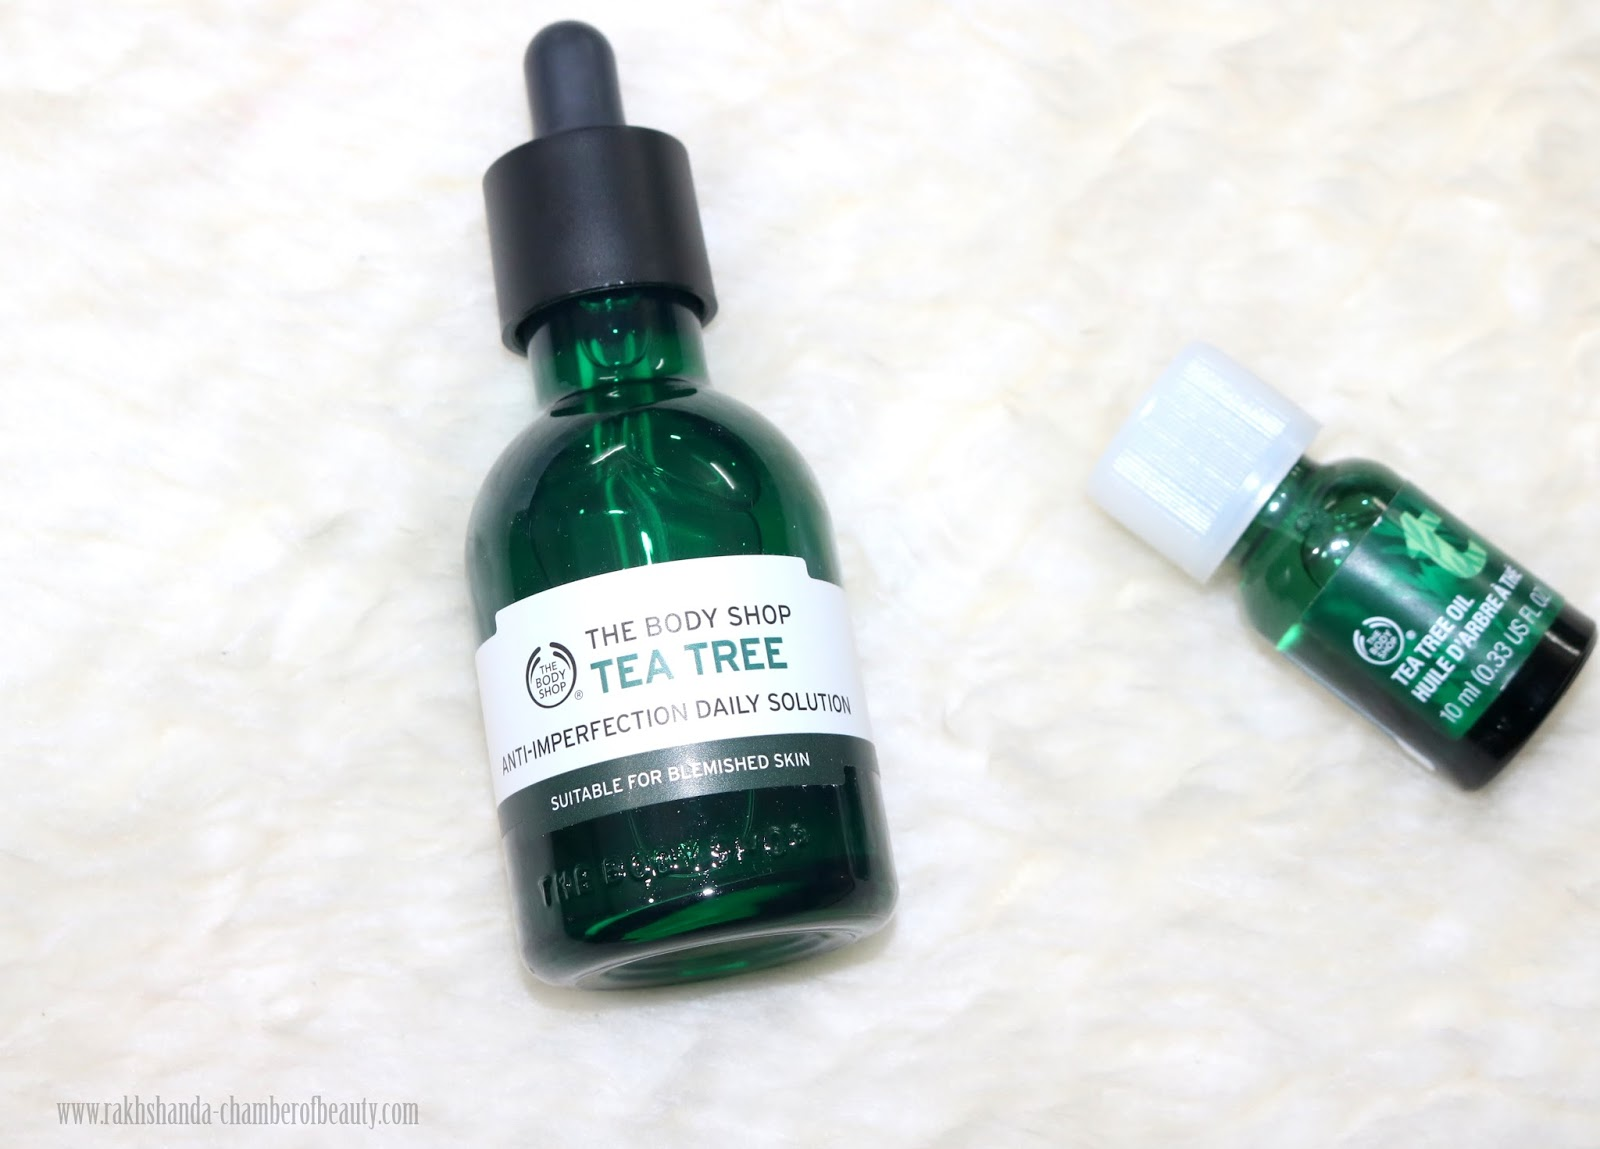 The Body Shop, Chamber of Beauty, Anti imperfection serum, The Body Shop Tea Tree Anti-imperfection Daily Solution, Indian beauty blogger,